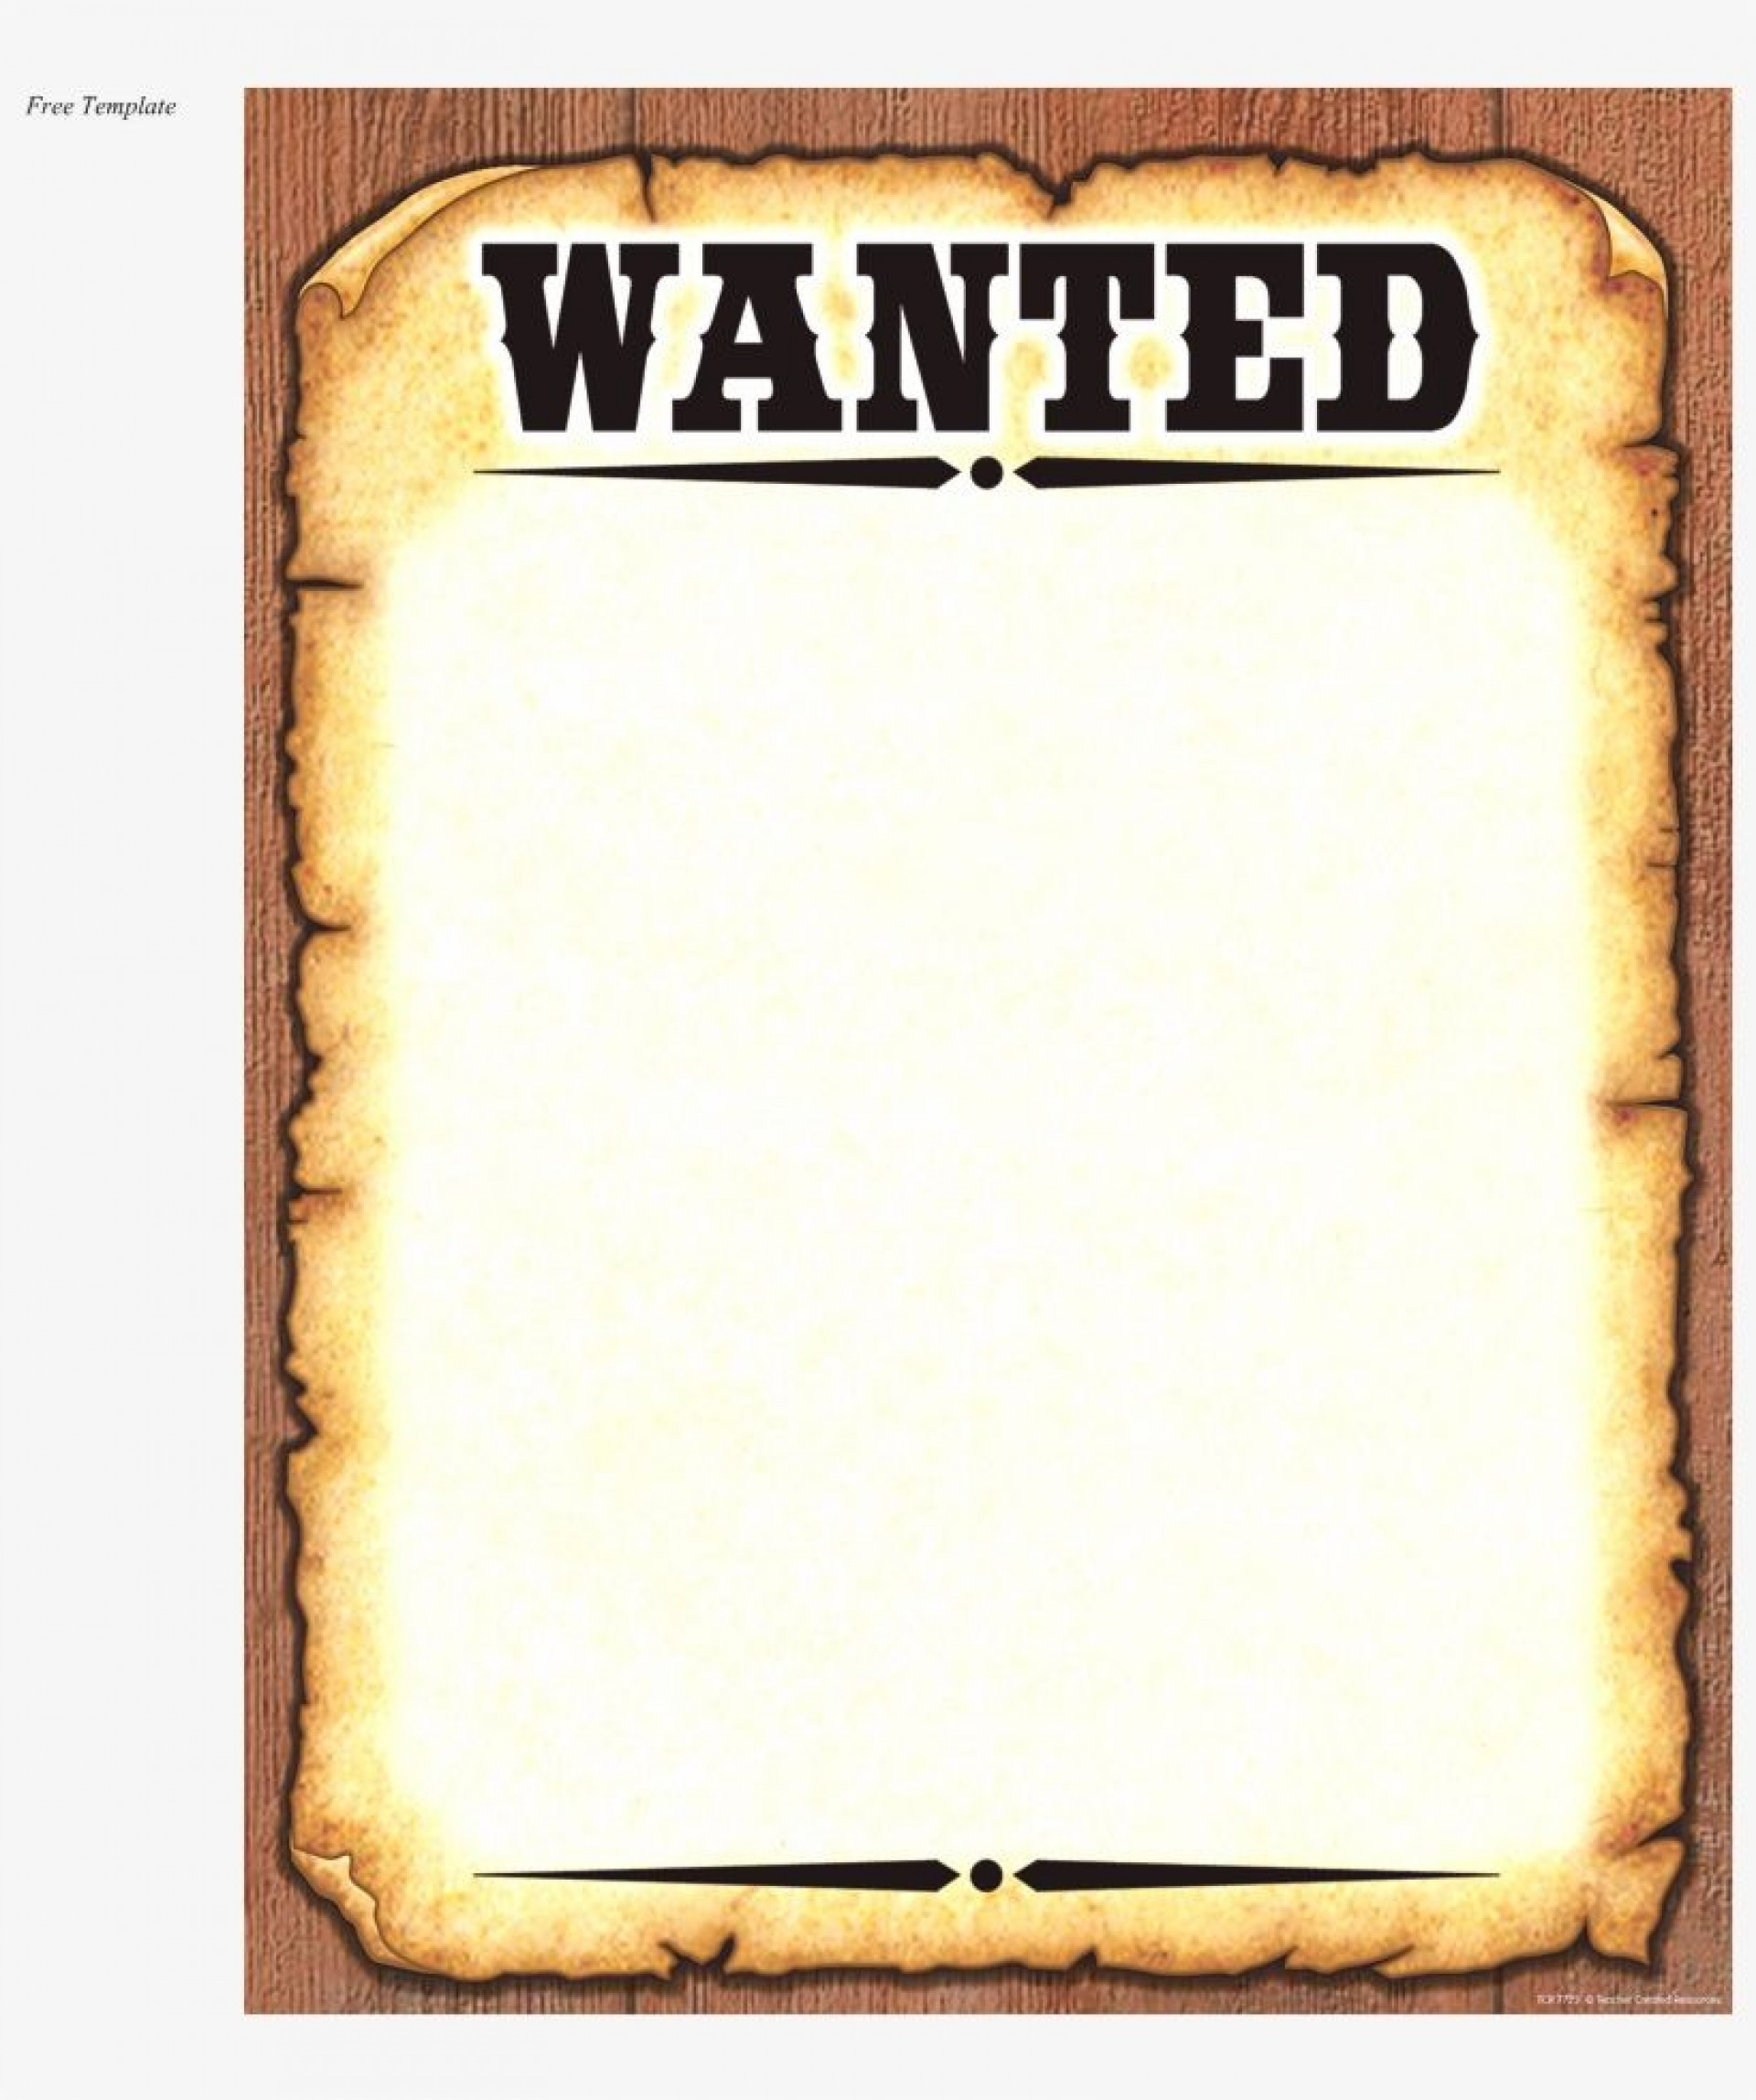 000 Striking Wanted Poster Template Microsoft Word Inspiration  Western Most1920